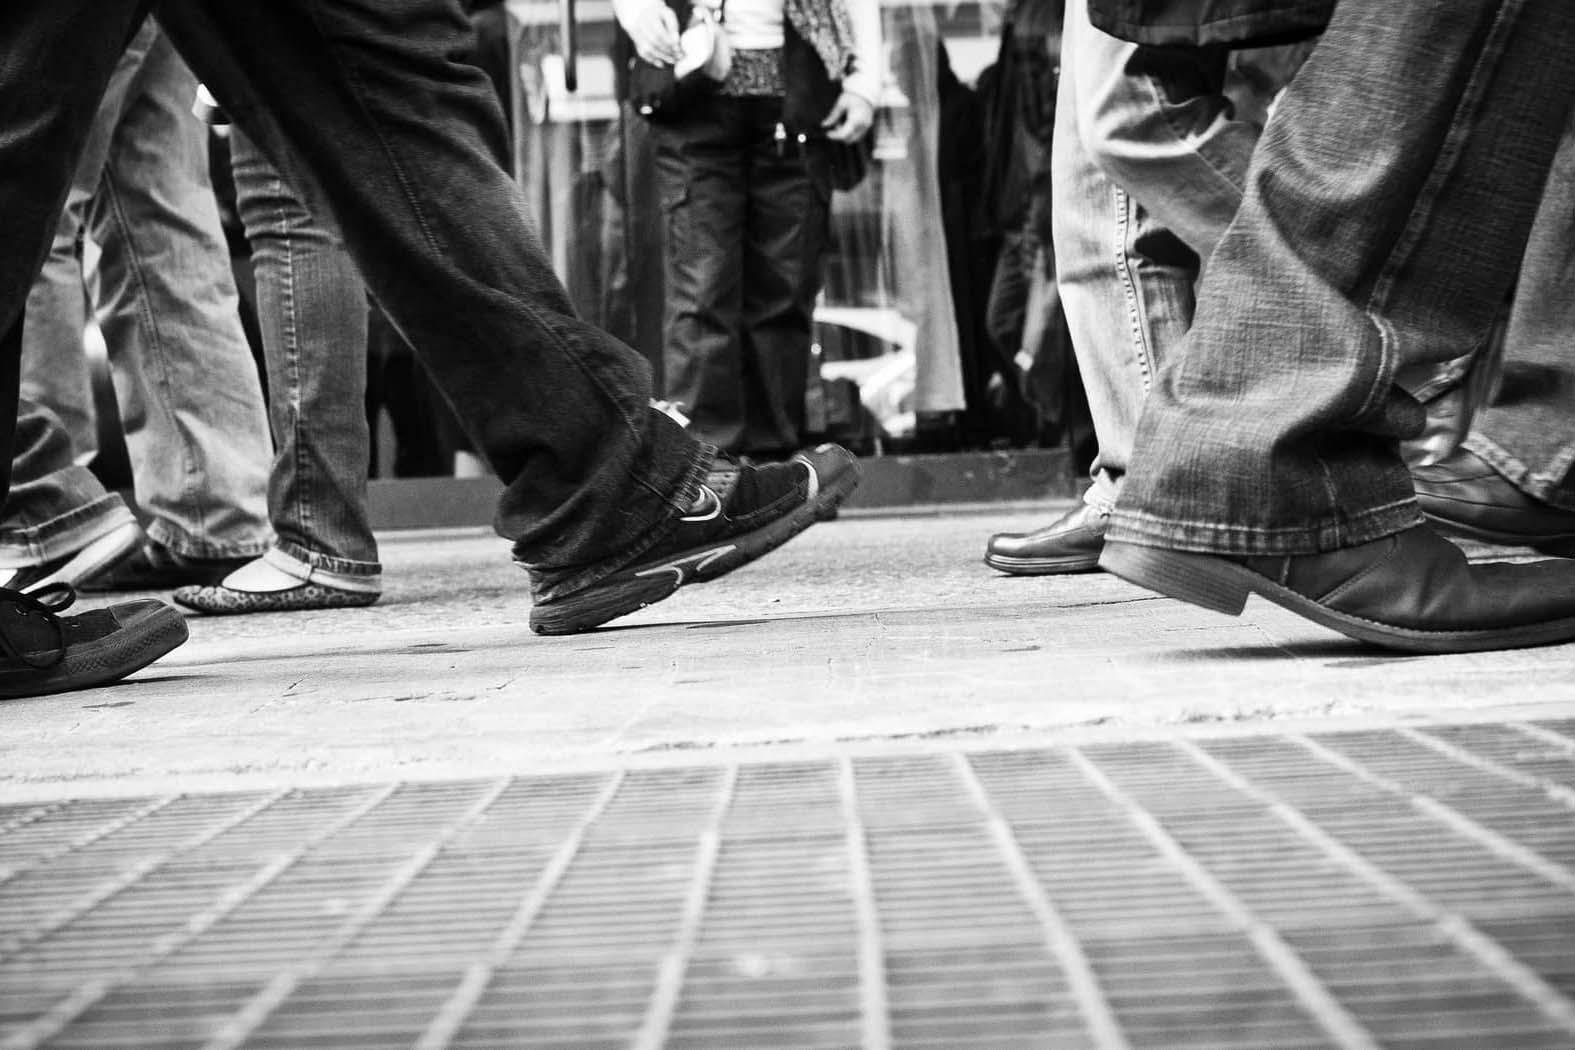 Black and white photo of people walking on a sidewalk